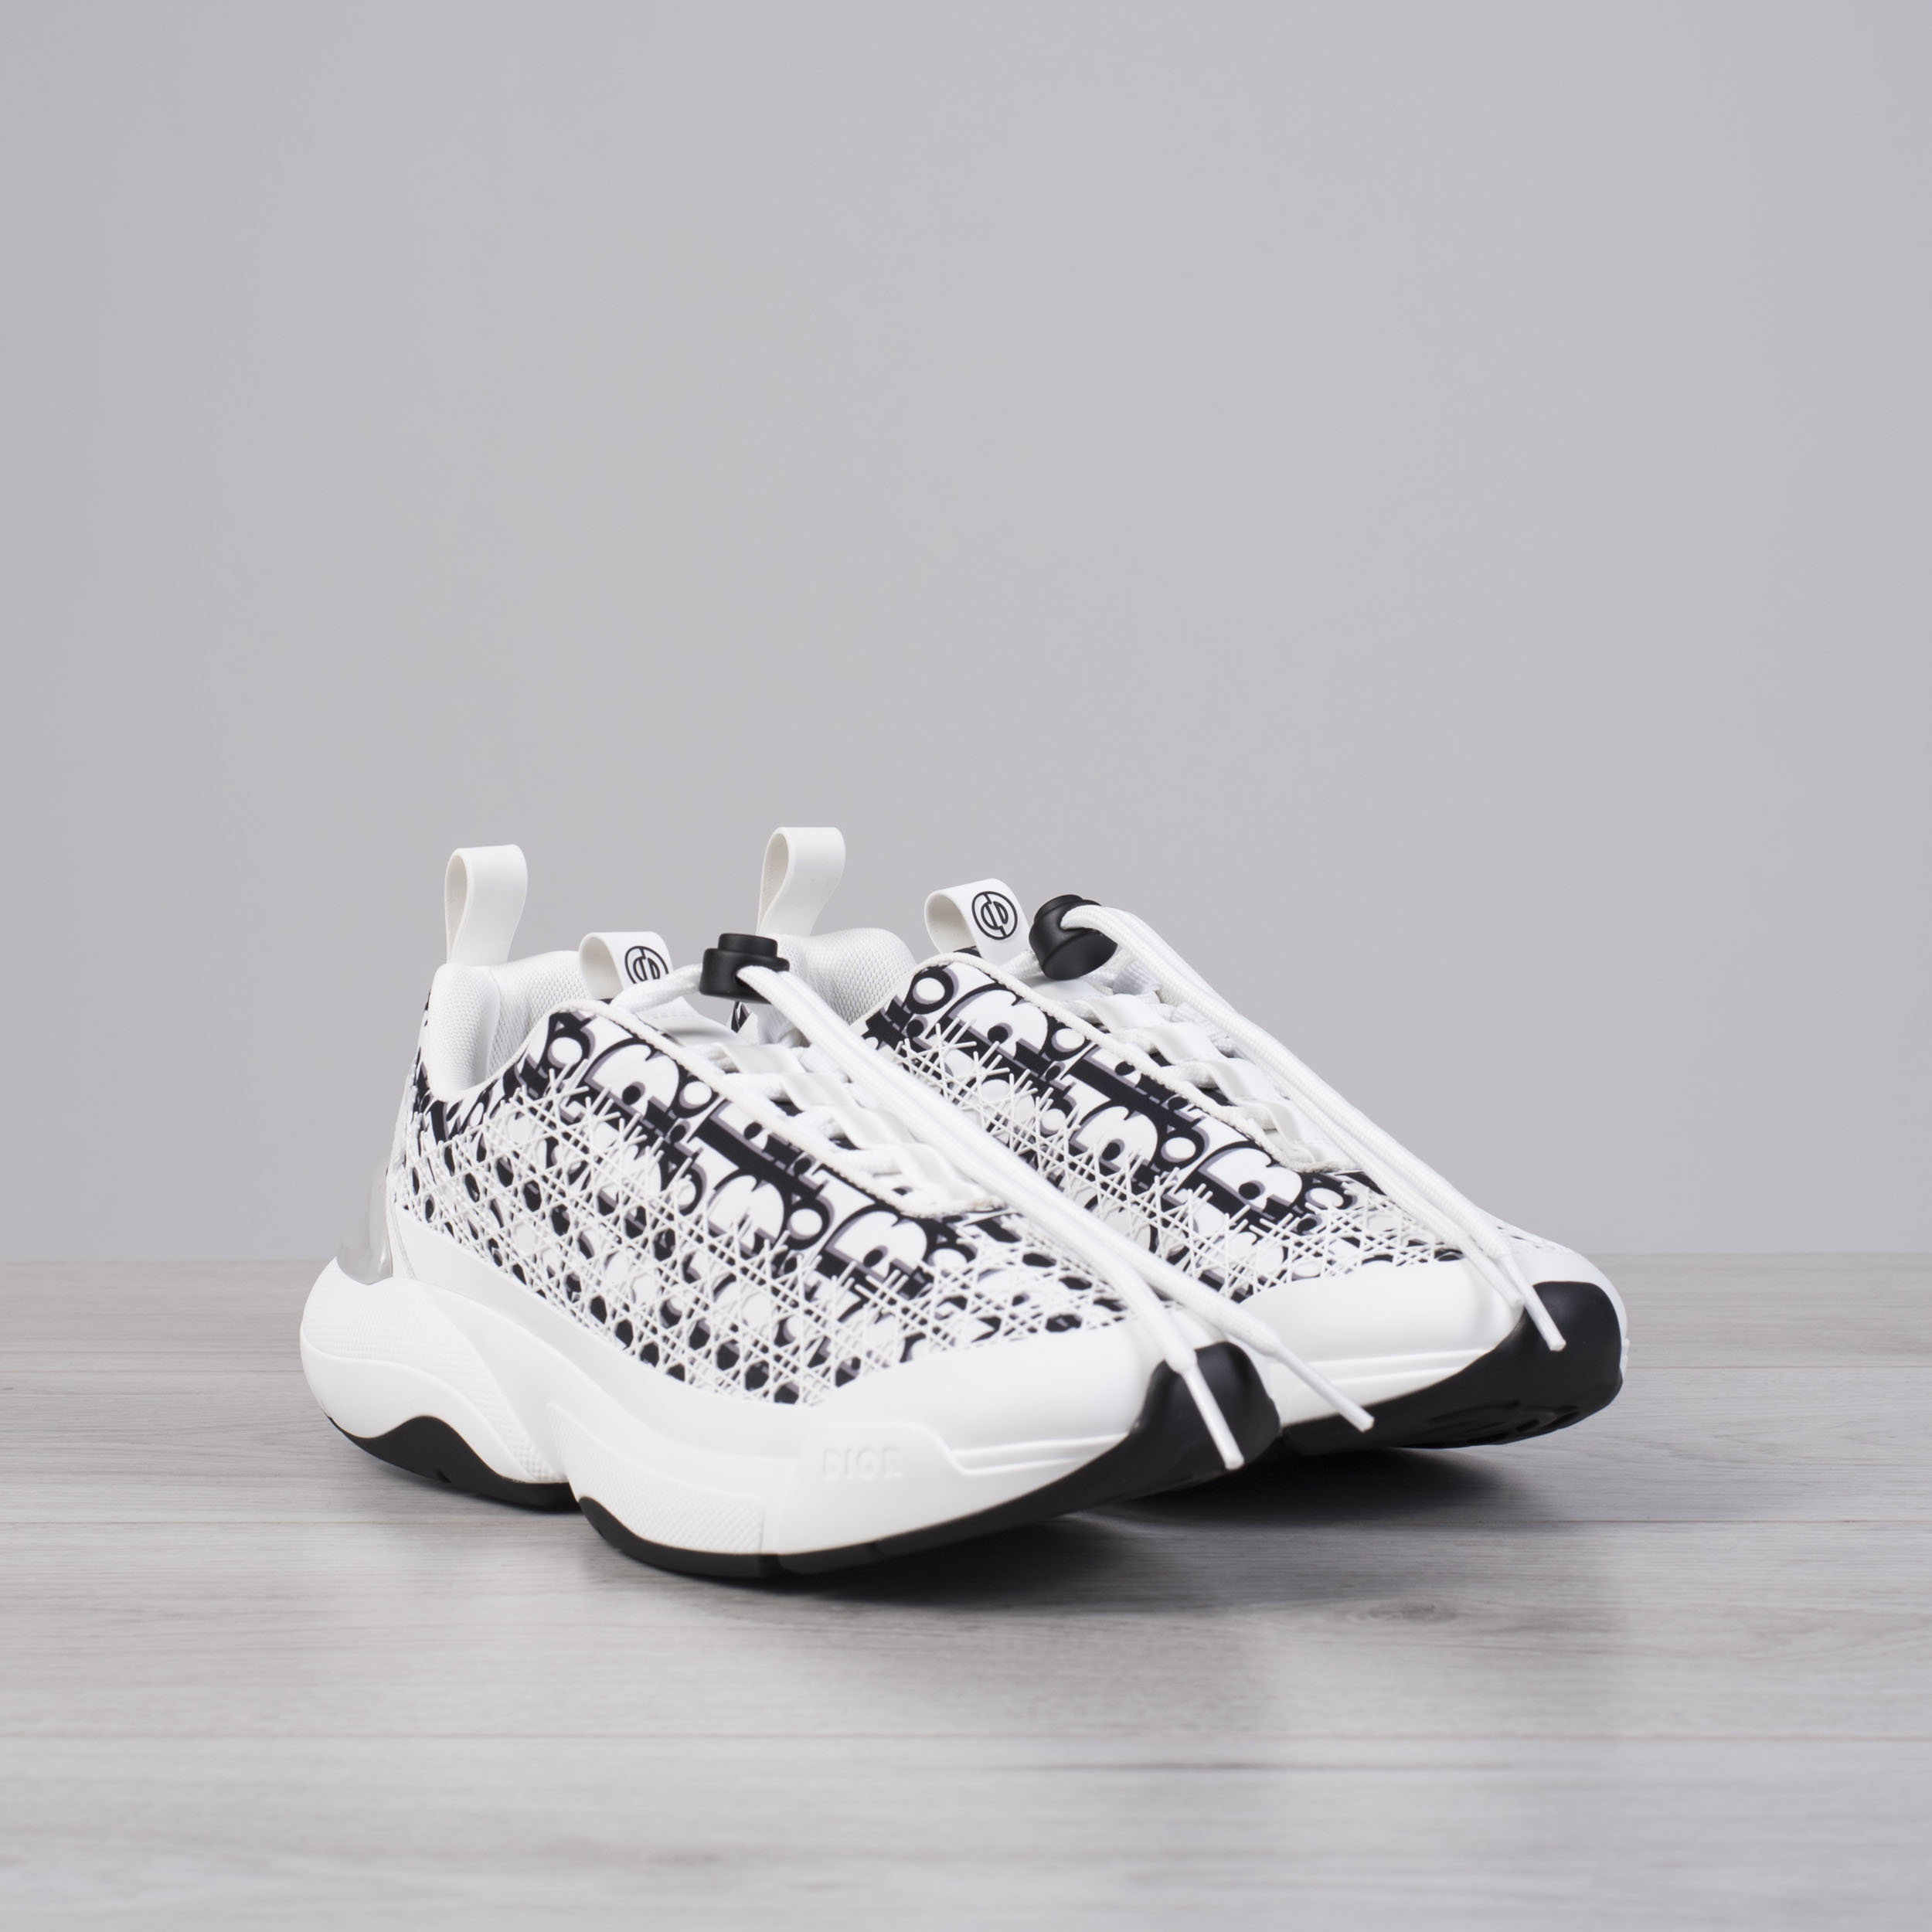 b610b85b8c DIOR HOMME 1050$ White Dior Oblique 'B24' Sneakers With Cannage ...